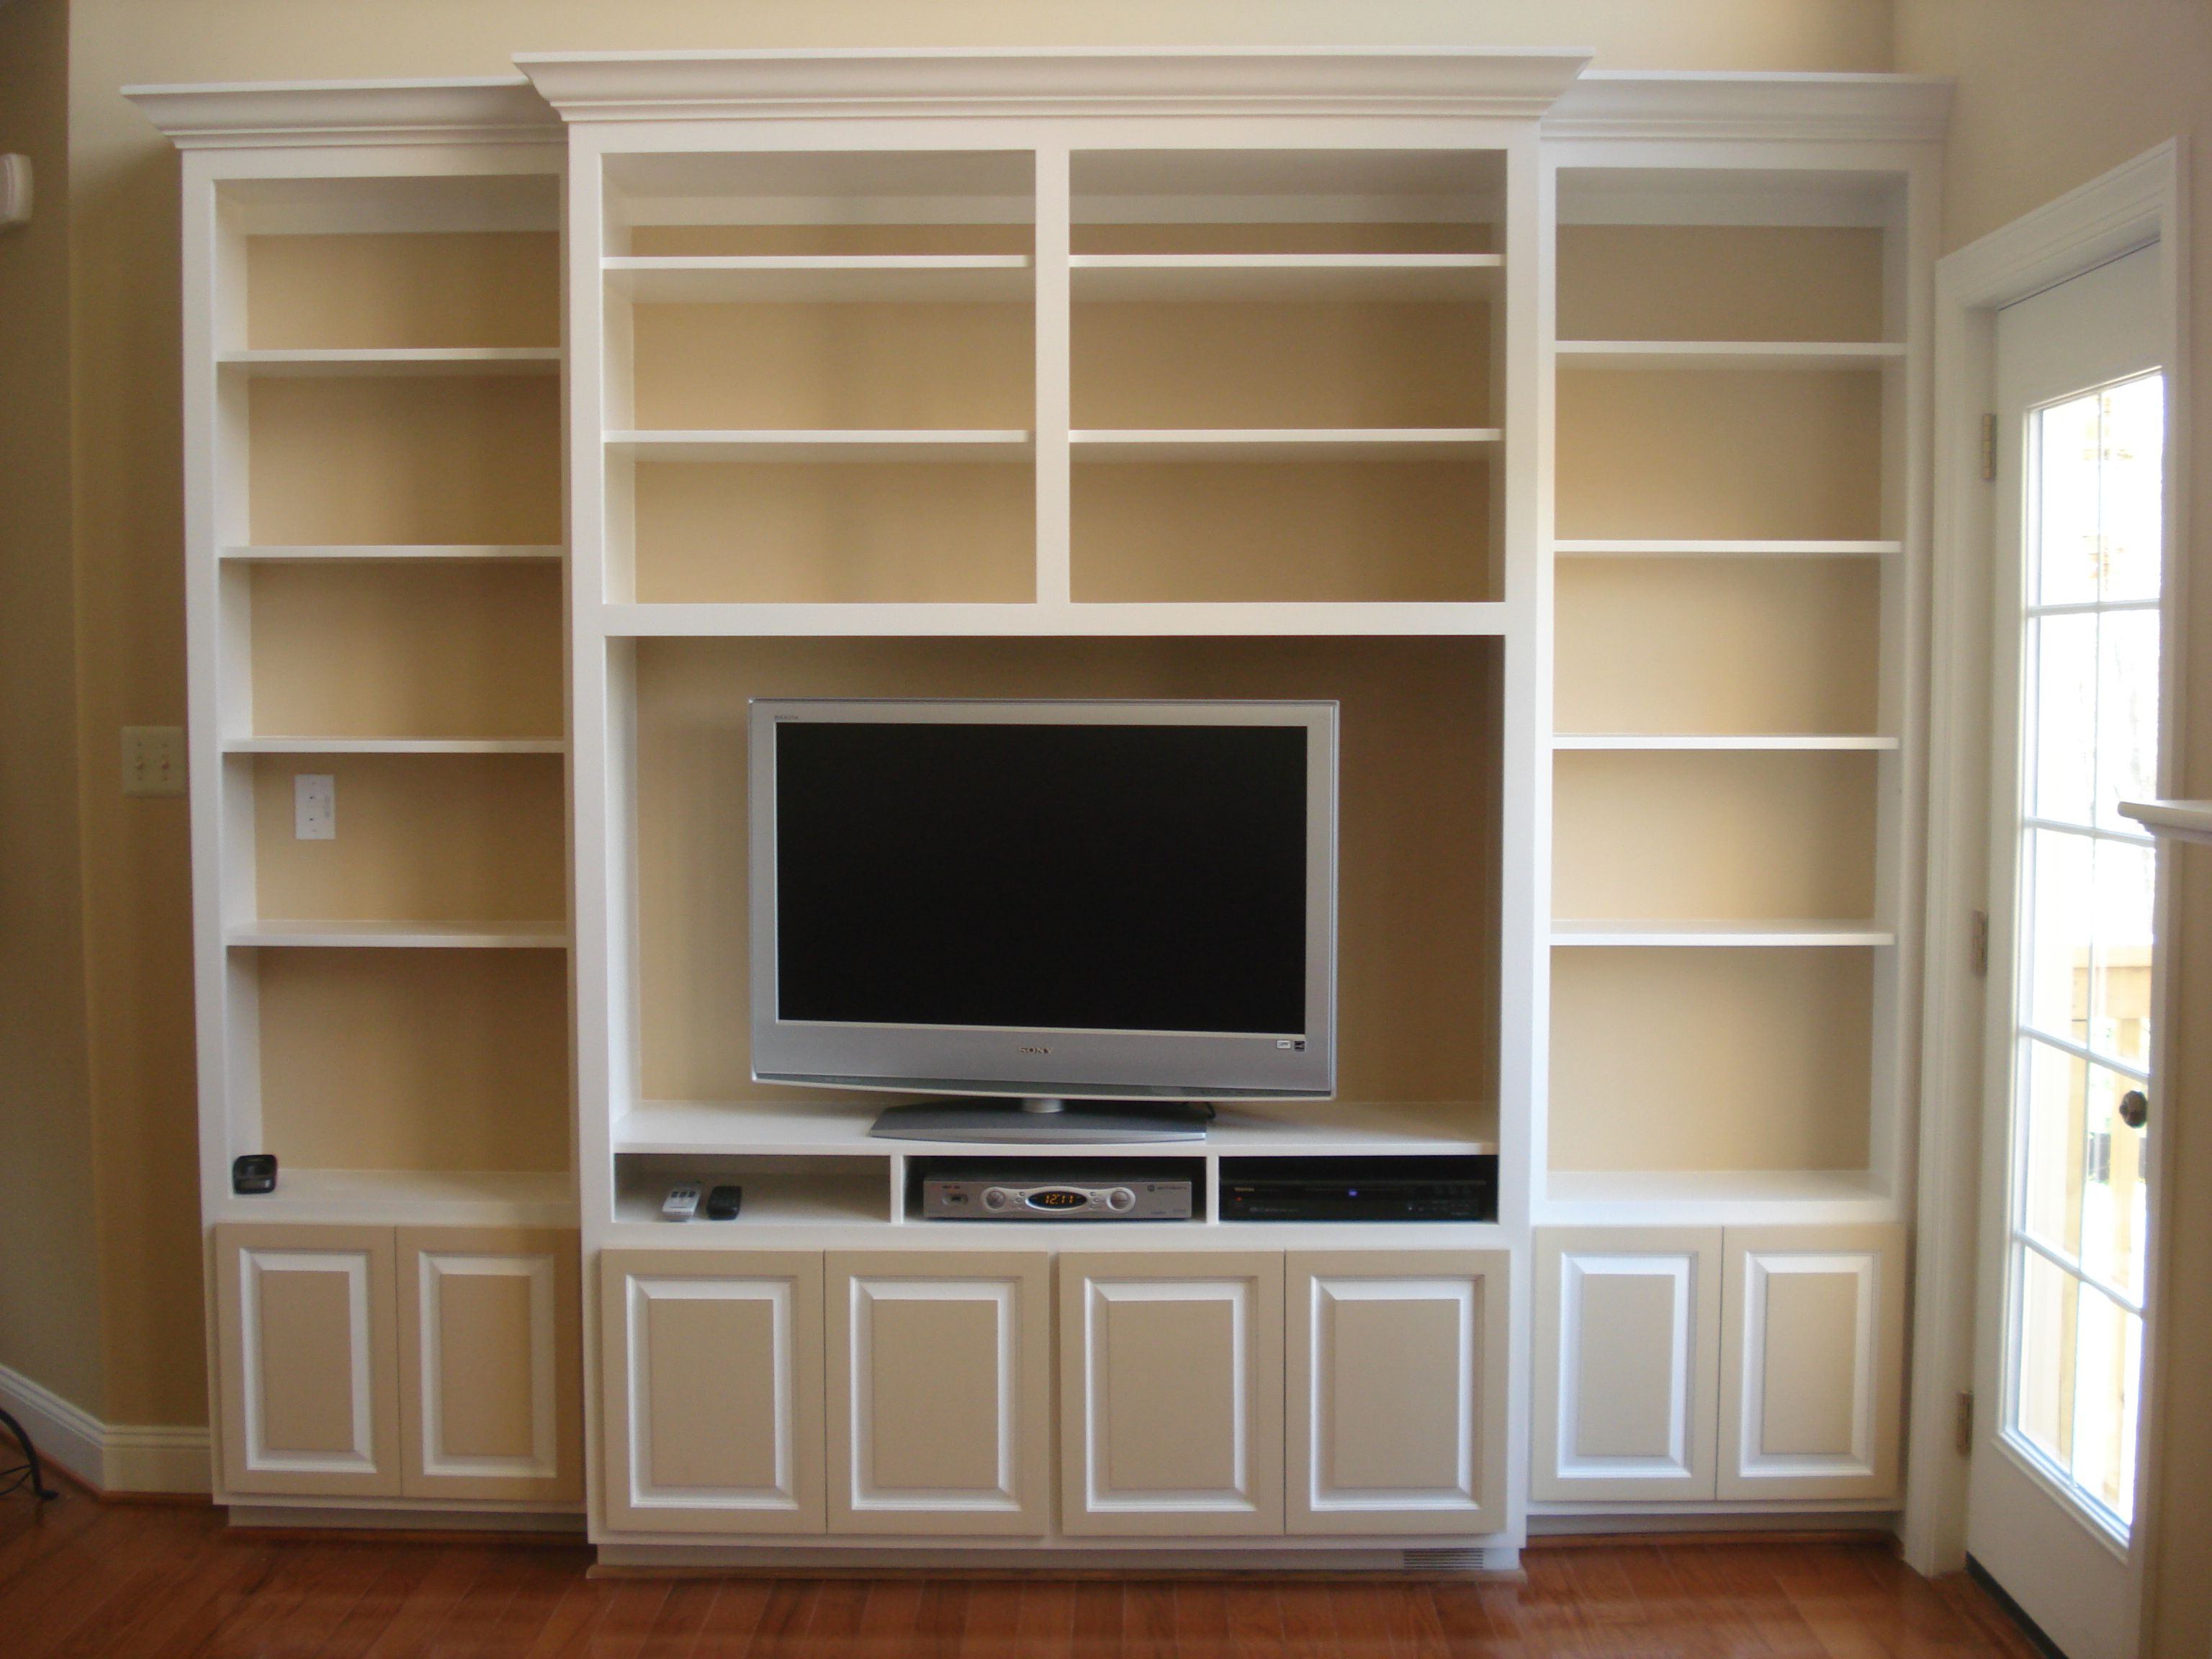 shelves ideas decorating delectable dining built seating corner bookshelves build ins fireplace center bench entertainment in living bar livingroom adding diy room bookshelf with around